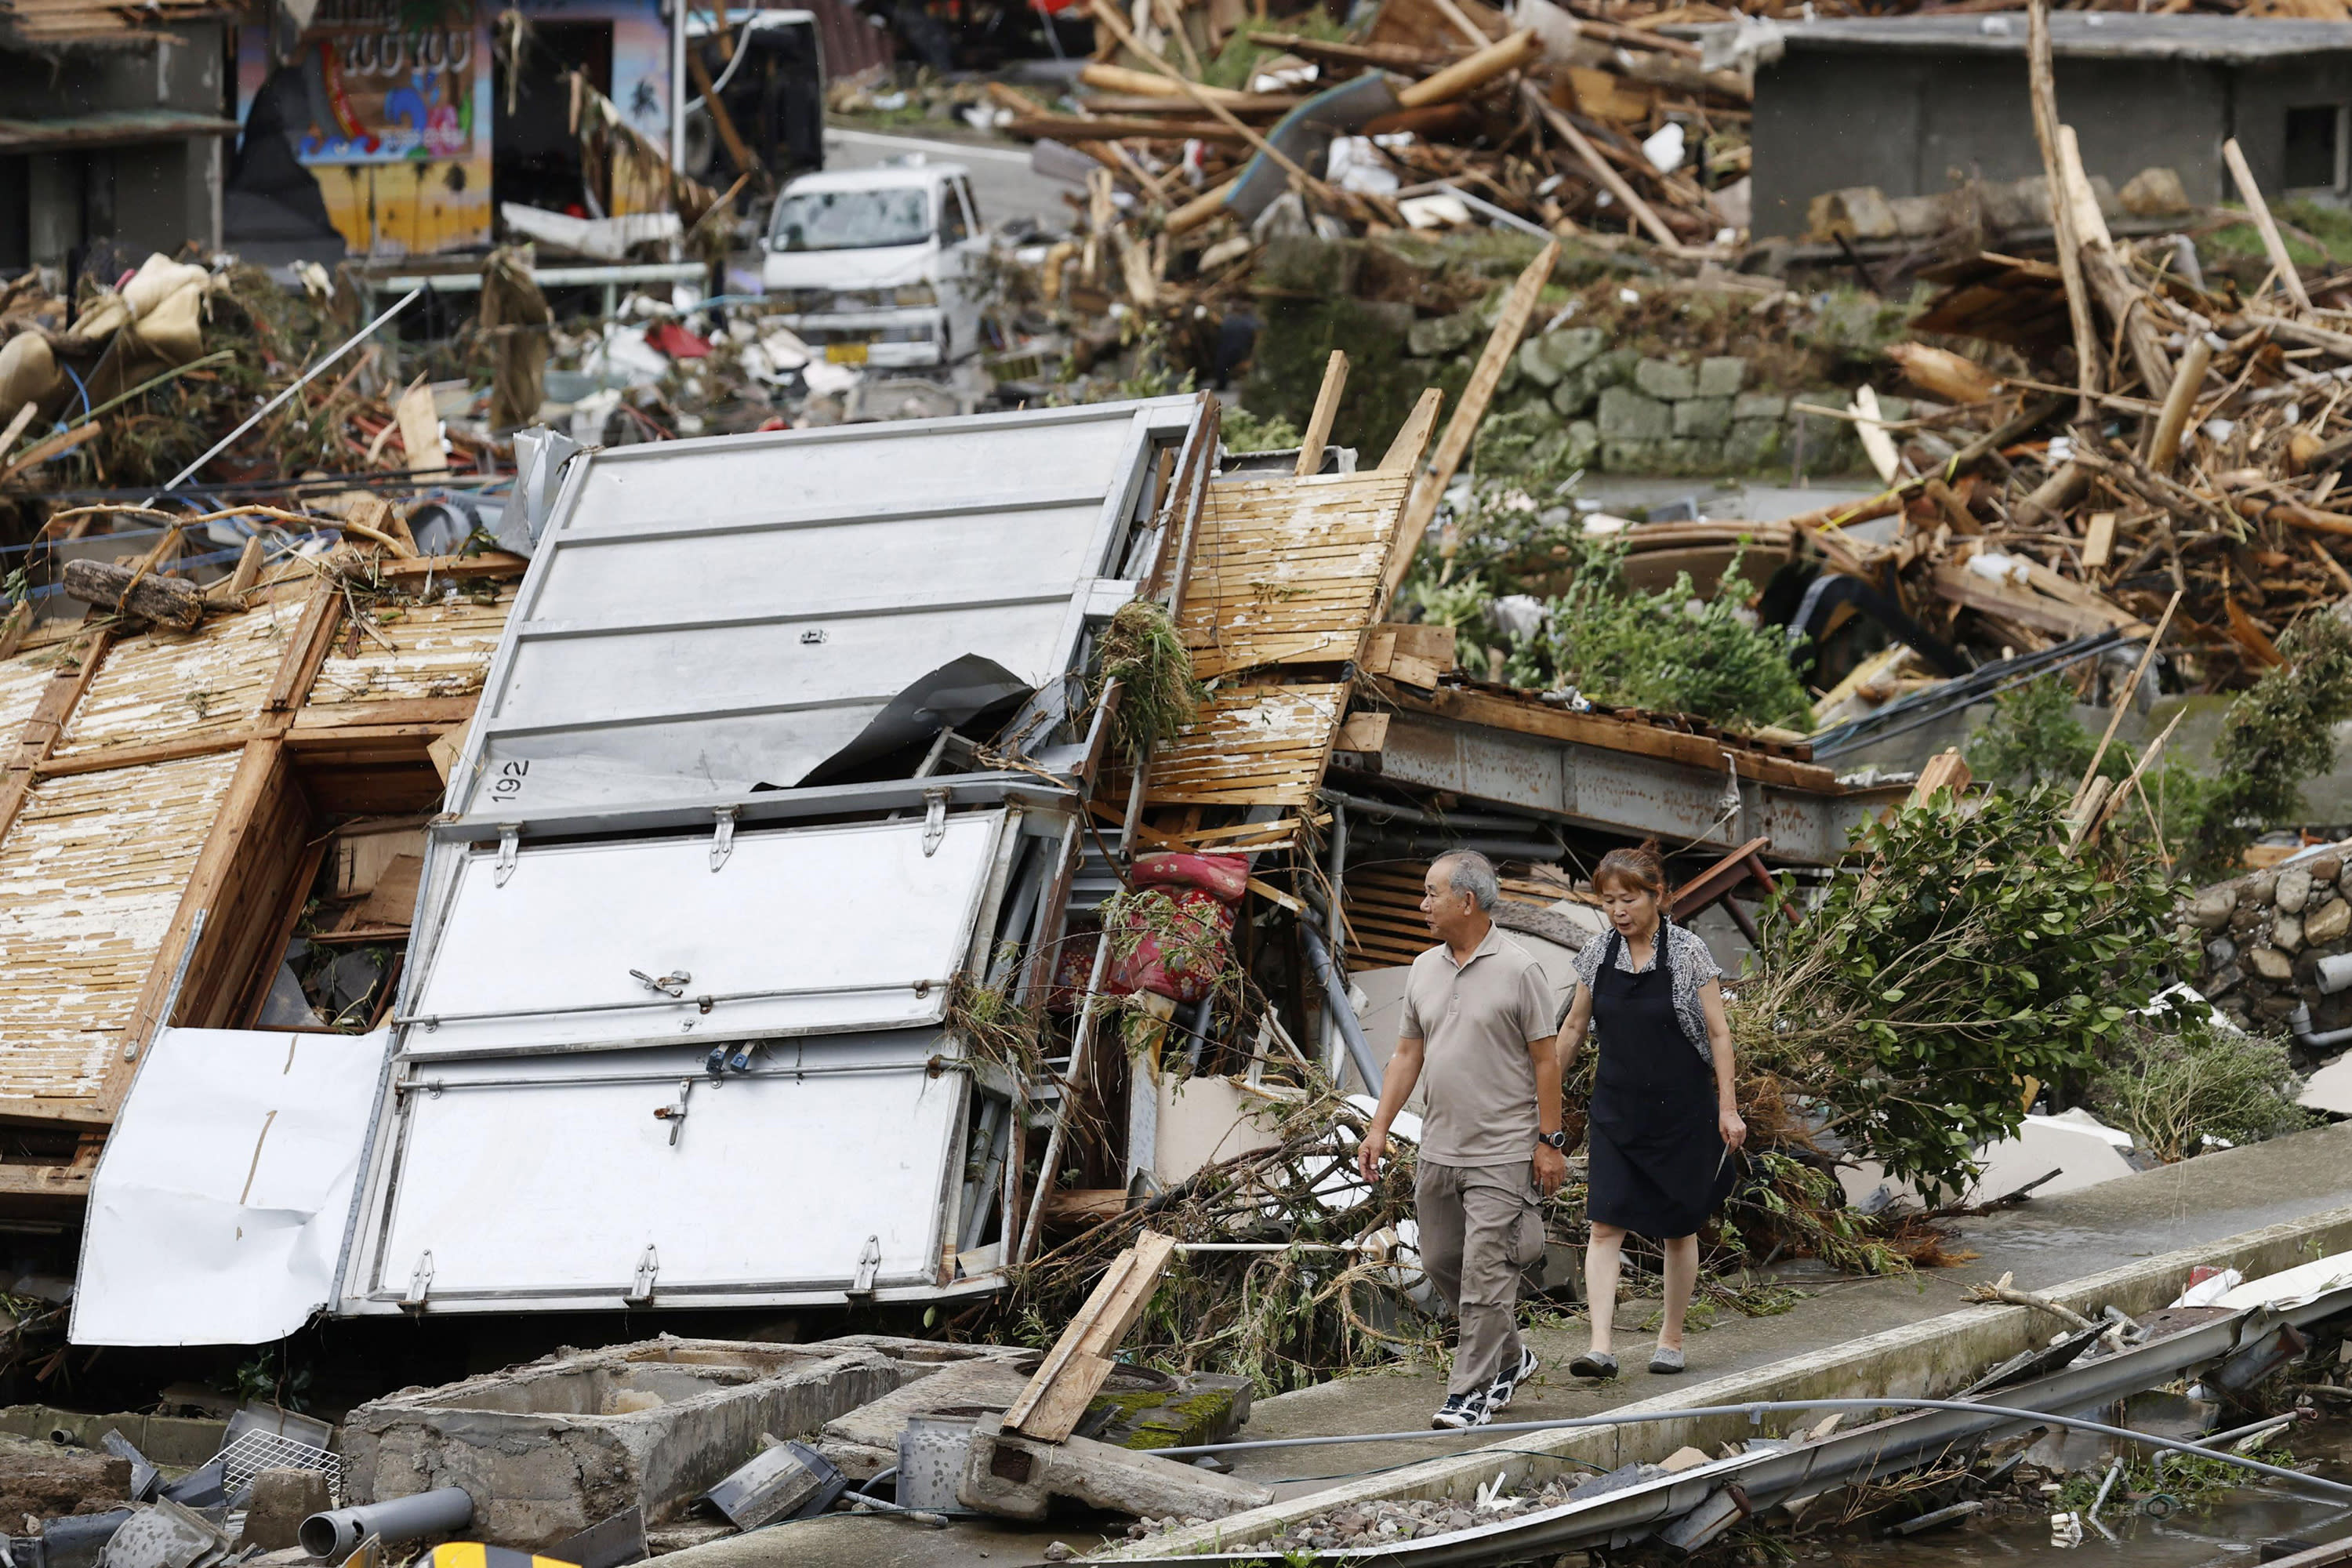 A couple walks near debris from a heavy rain in Kumamura, Kumamoto prefecture, southern Japan Monday, July 6, 2020. Rescue operations continued and rain threatened wider areas of the main island of Kyushu. (Kyodo News via AP)